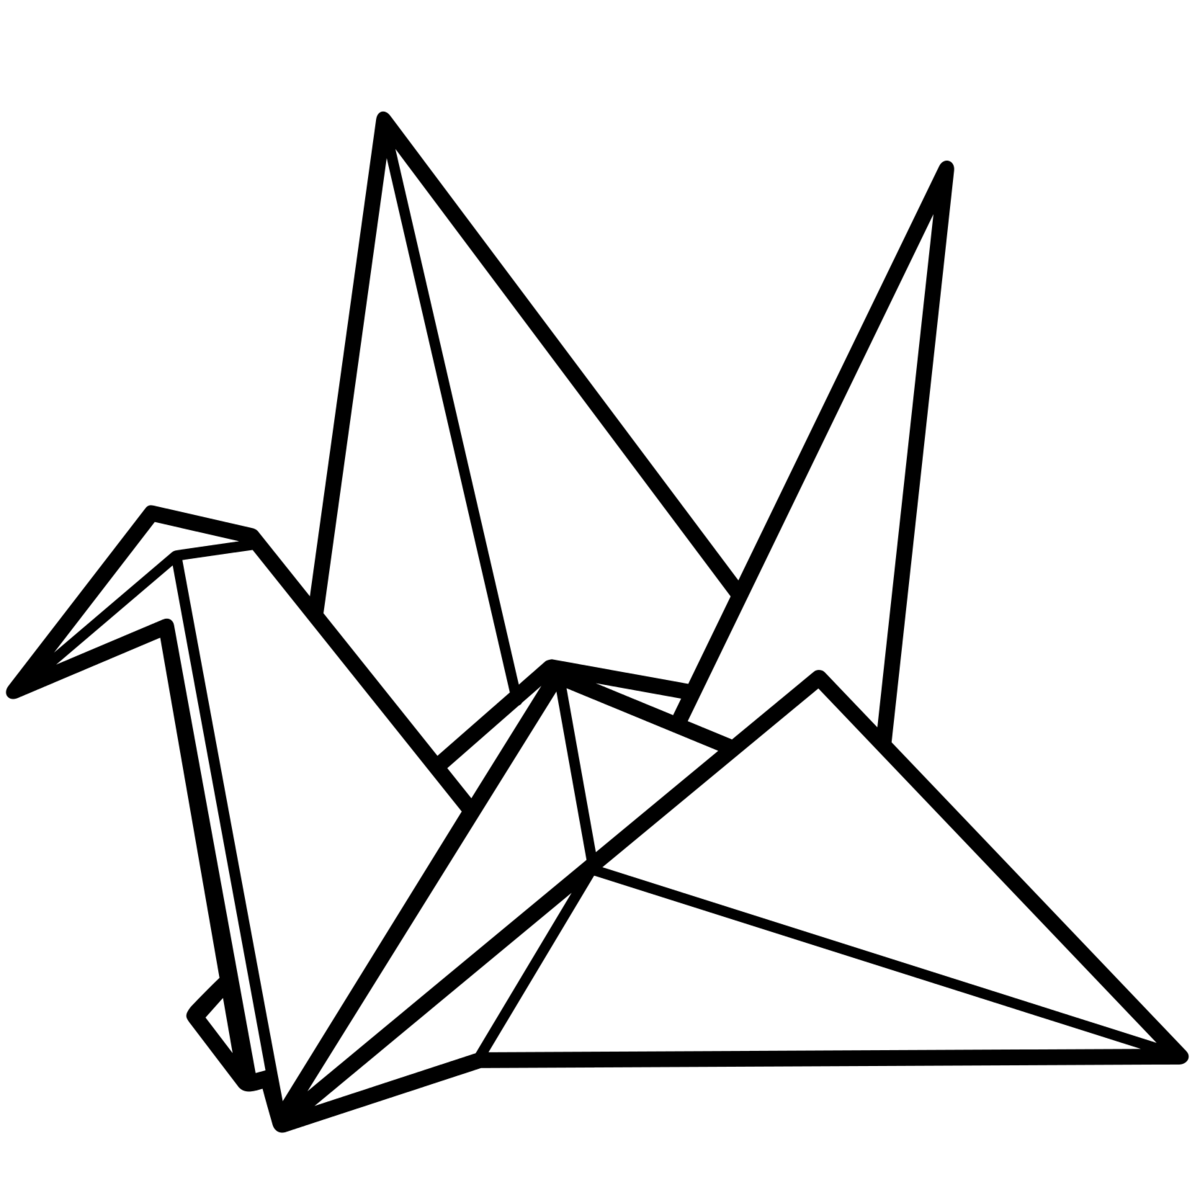 Origami drawing clipart images gallery for free download.